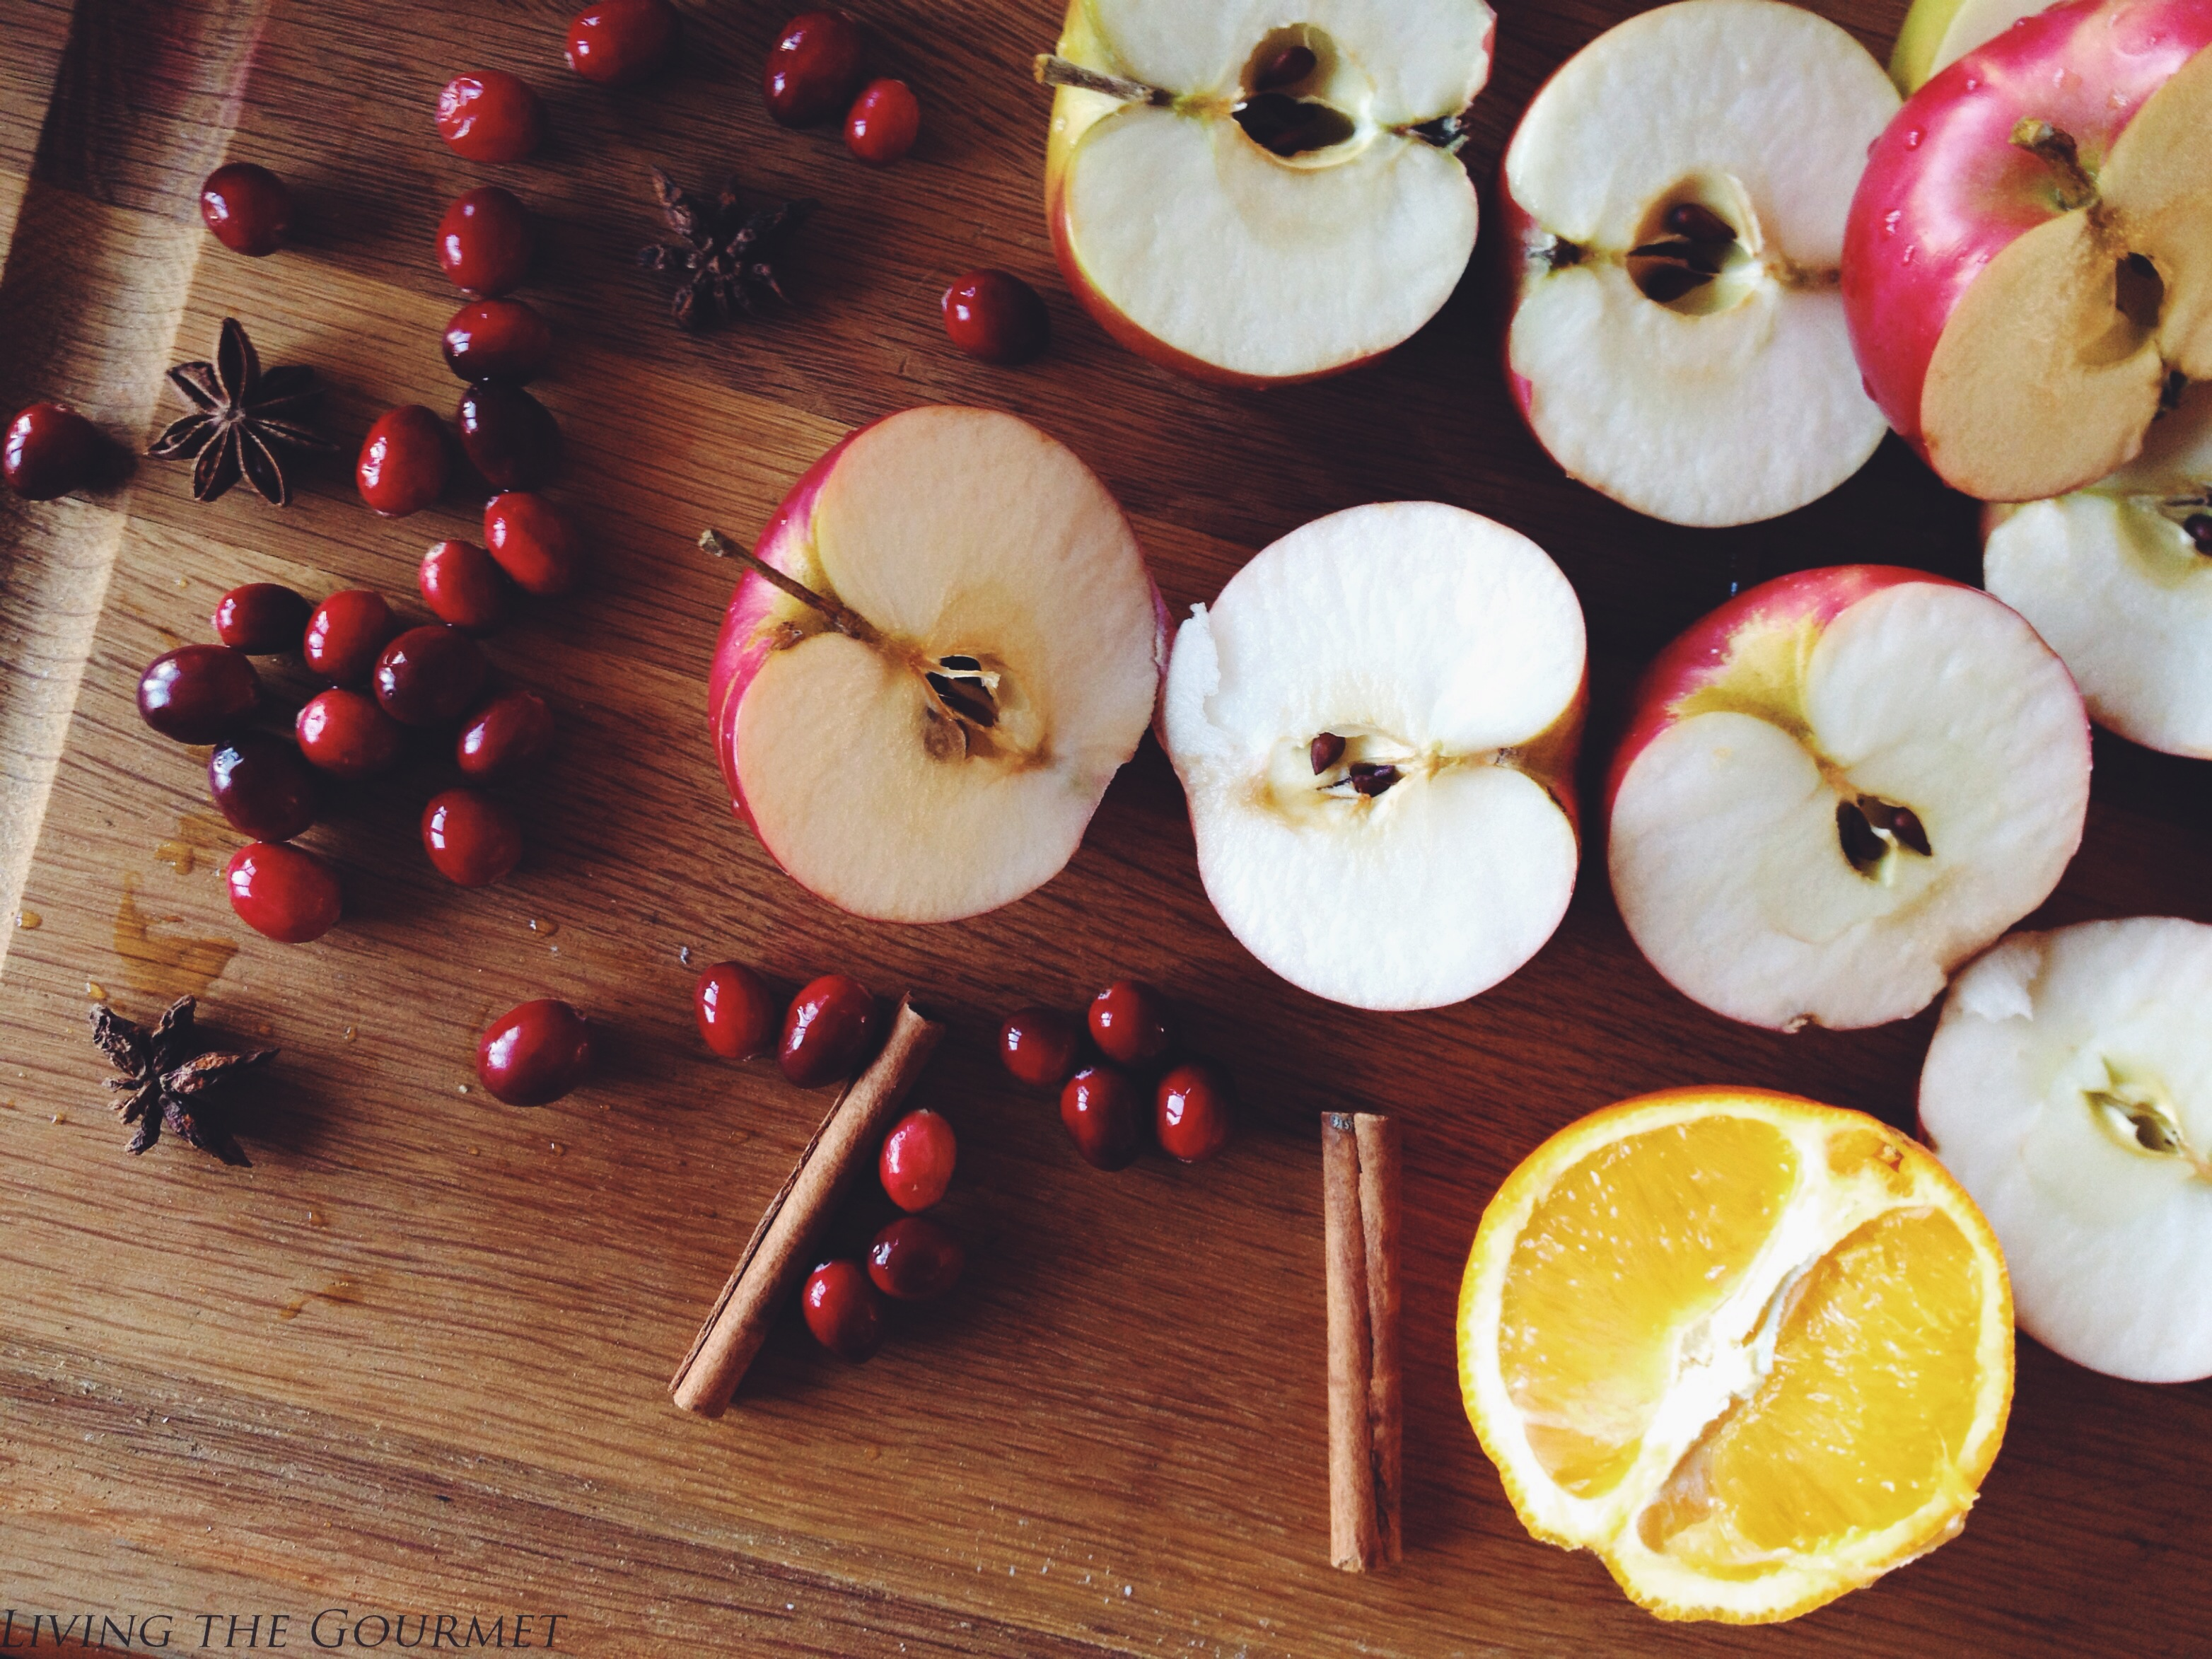 Living the Gourmet: Homemade Spiced Cider